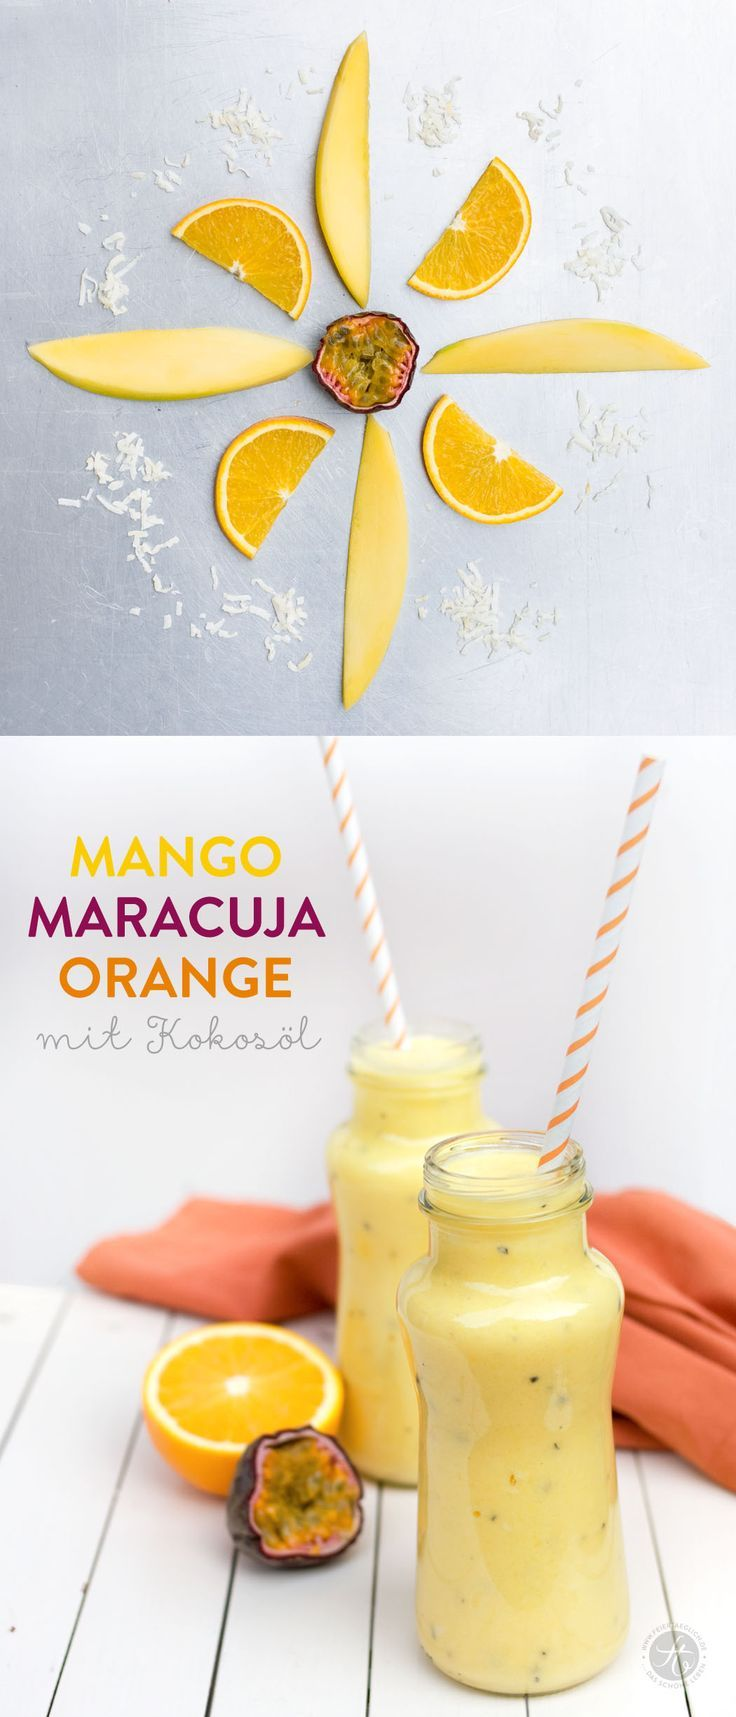 #SmoothieMontag Mango-Maracuja-Orange Smoothie mit Kokosöl